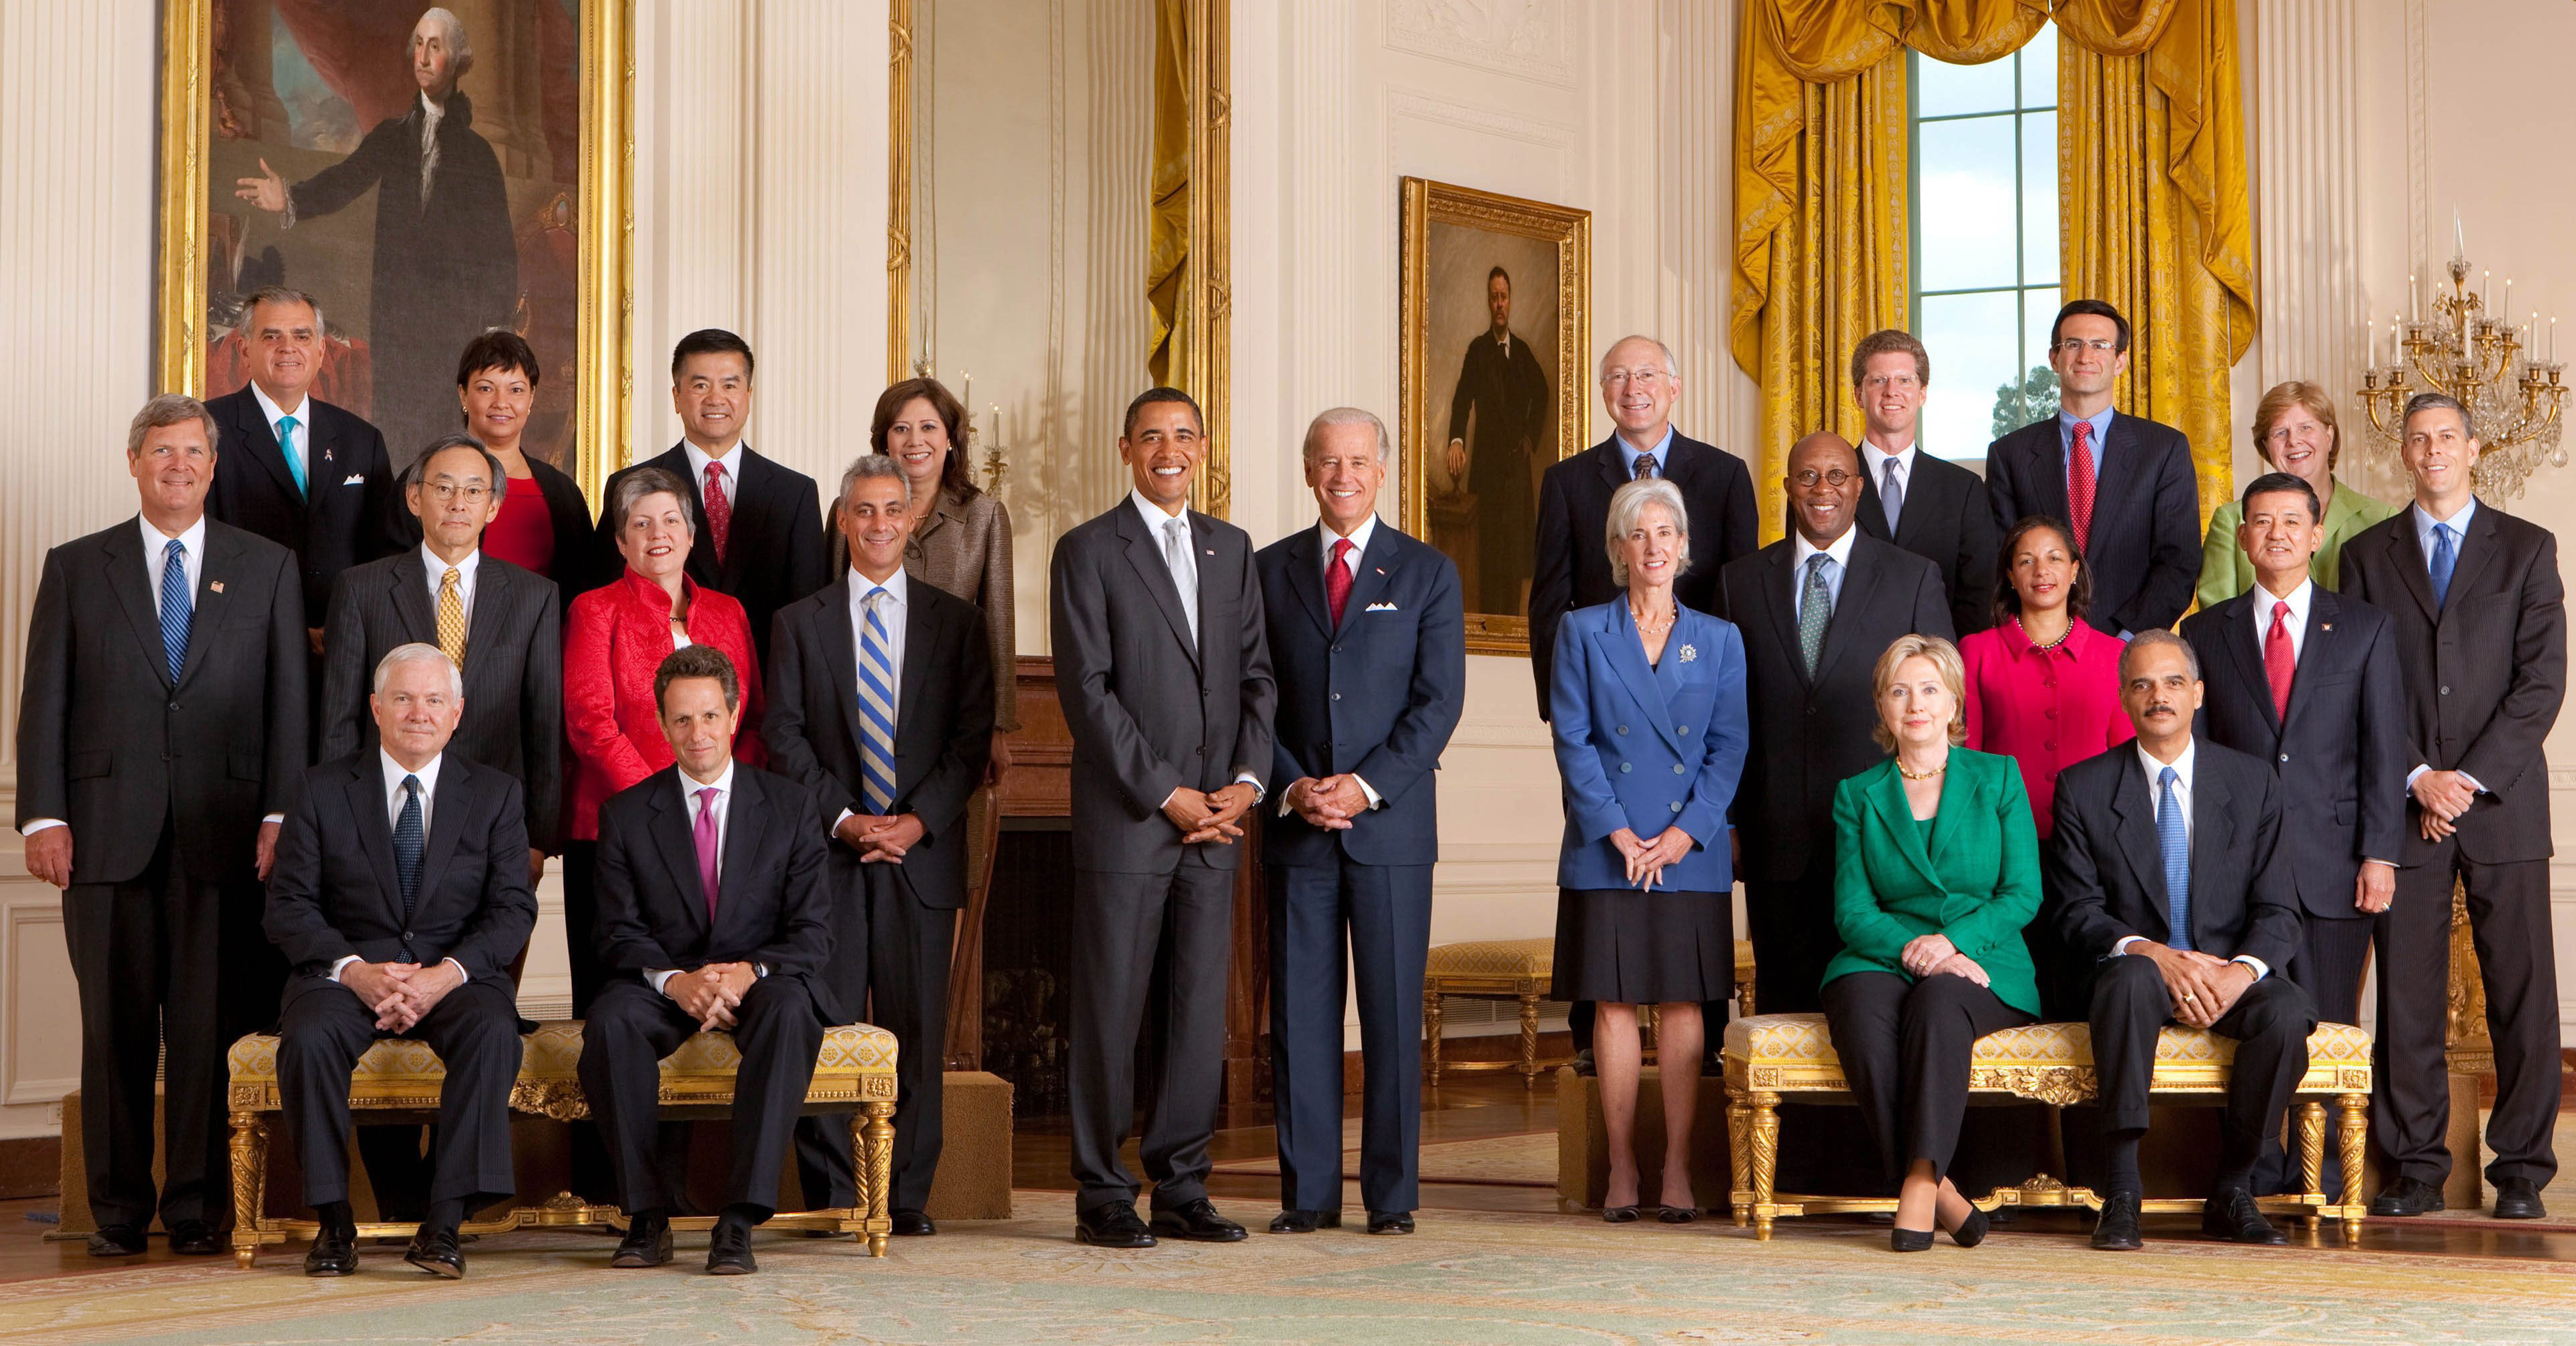 Official White House photo of Obama Cabinet